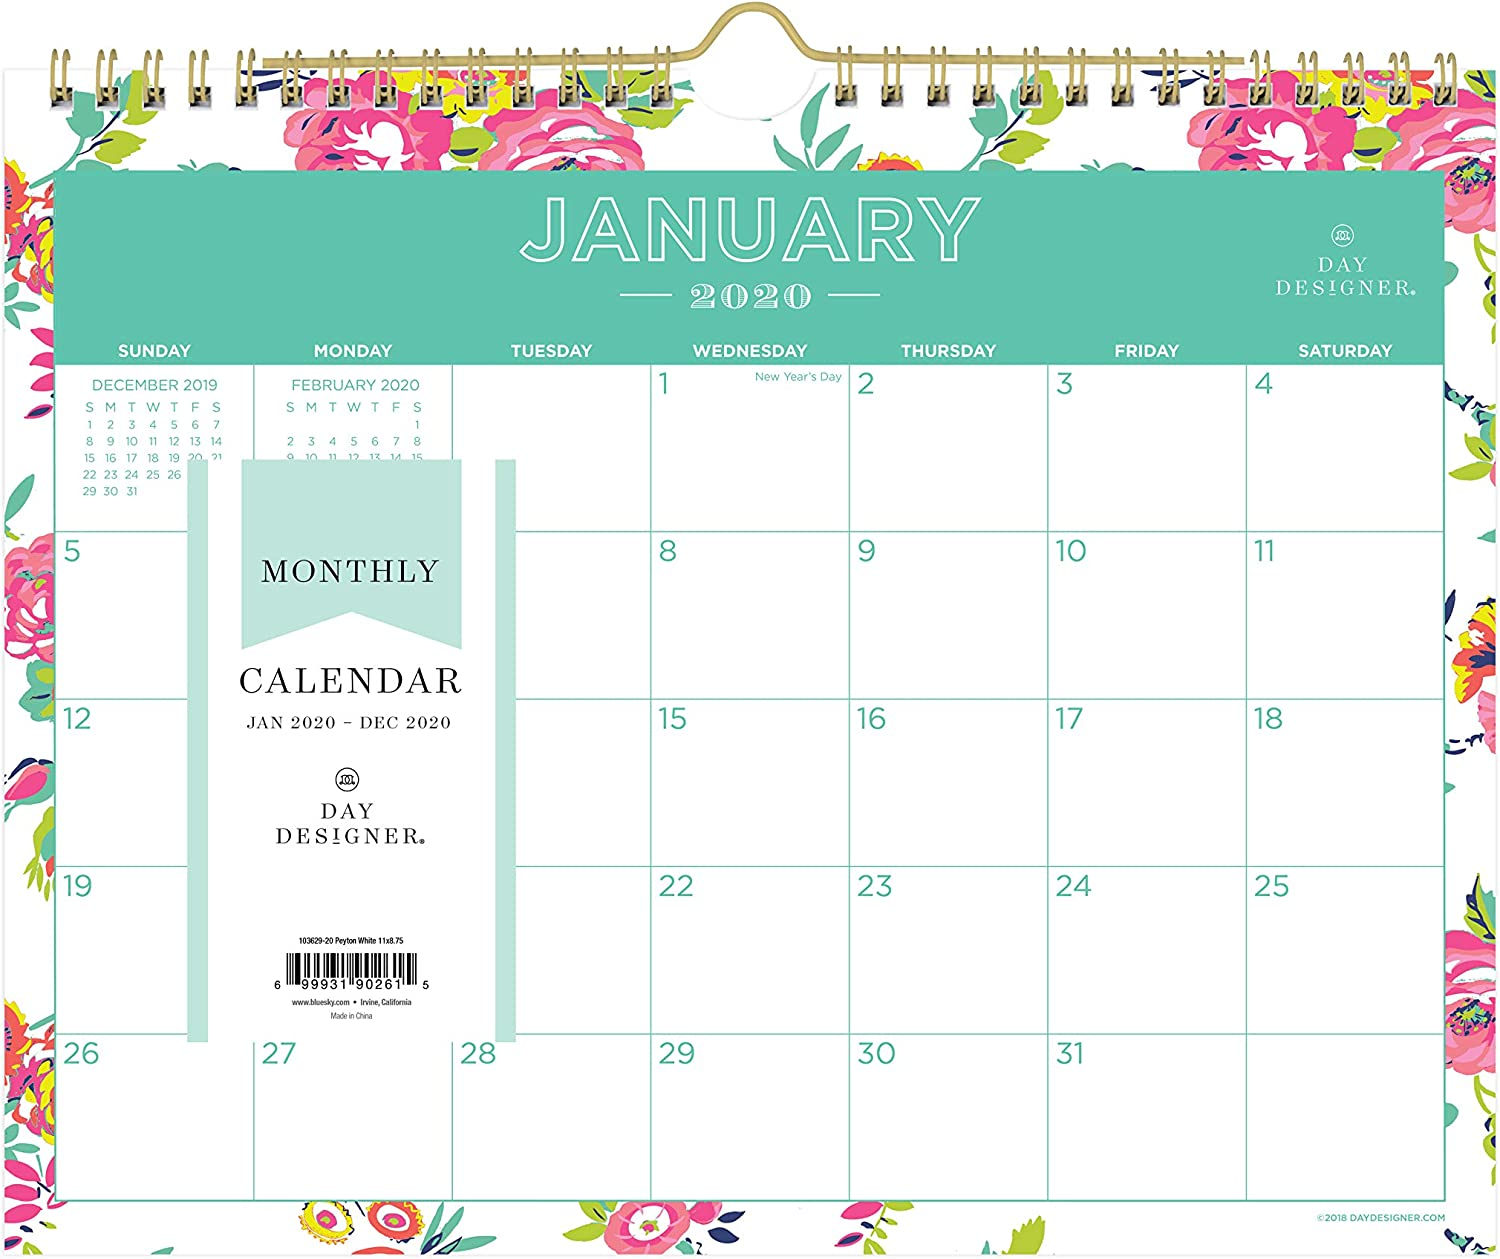 Day Designer for Blue Sky 2020 Monthly Wall Calendar, Twin-Wire Binding, 11